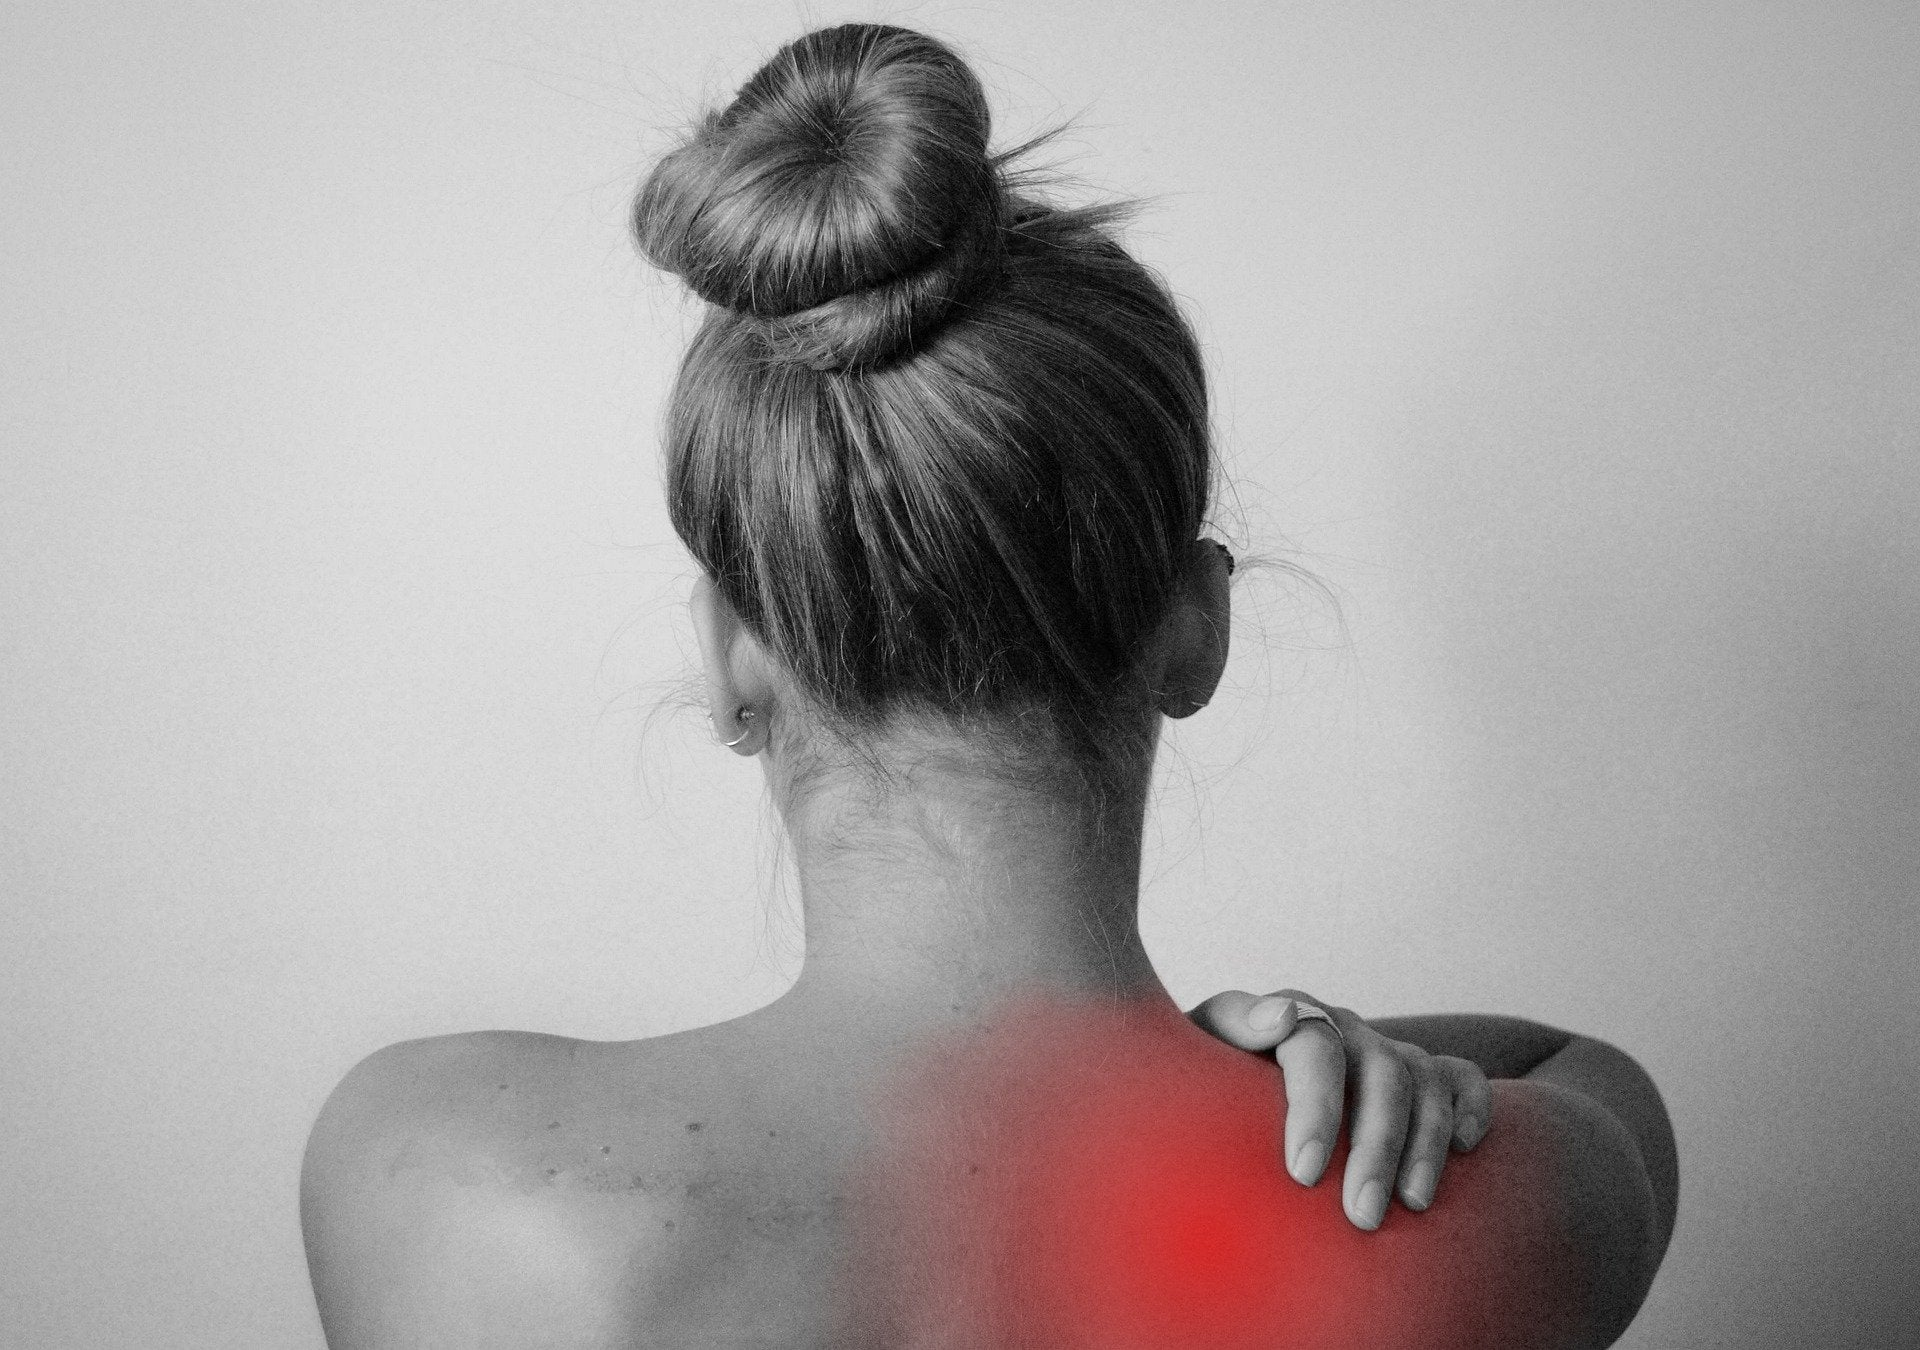 Exercises to Prevent and Rehab Shoulder Injuries